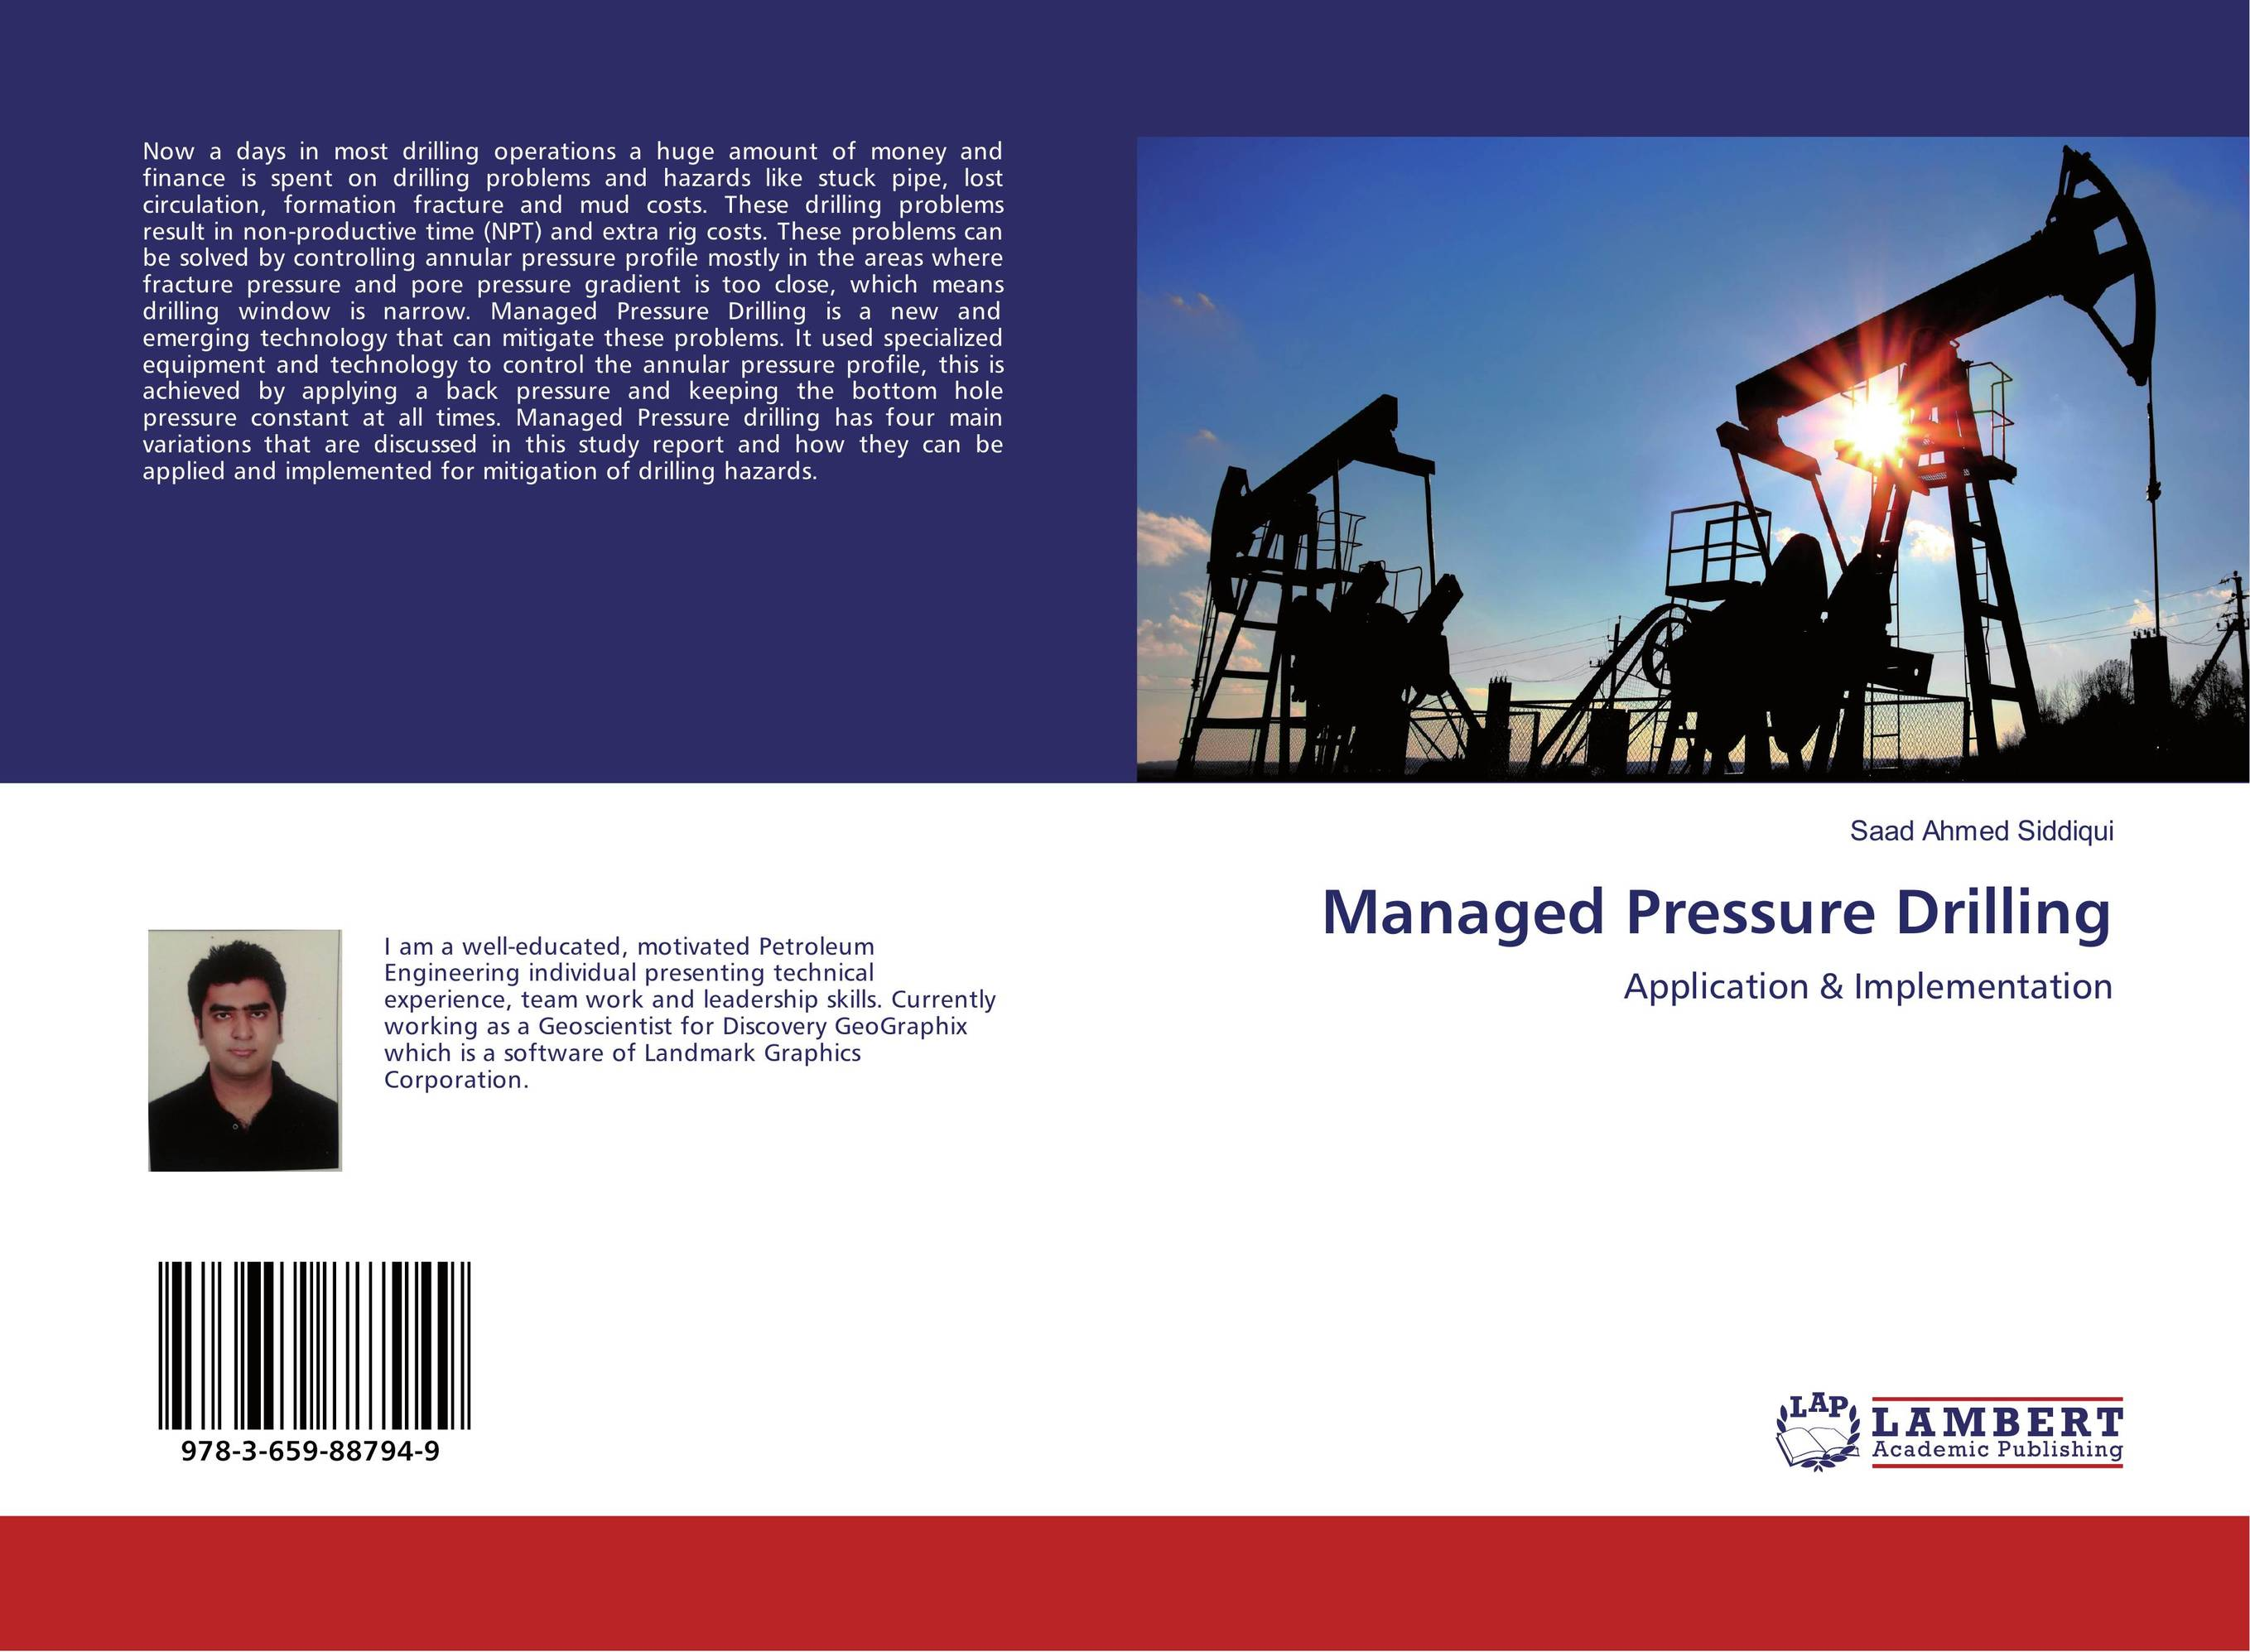 Фото Managed Pressure Drilling finance and investments